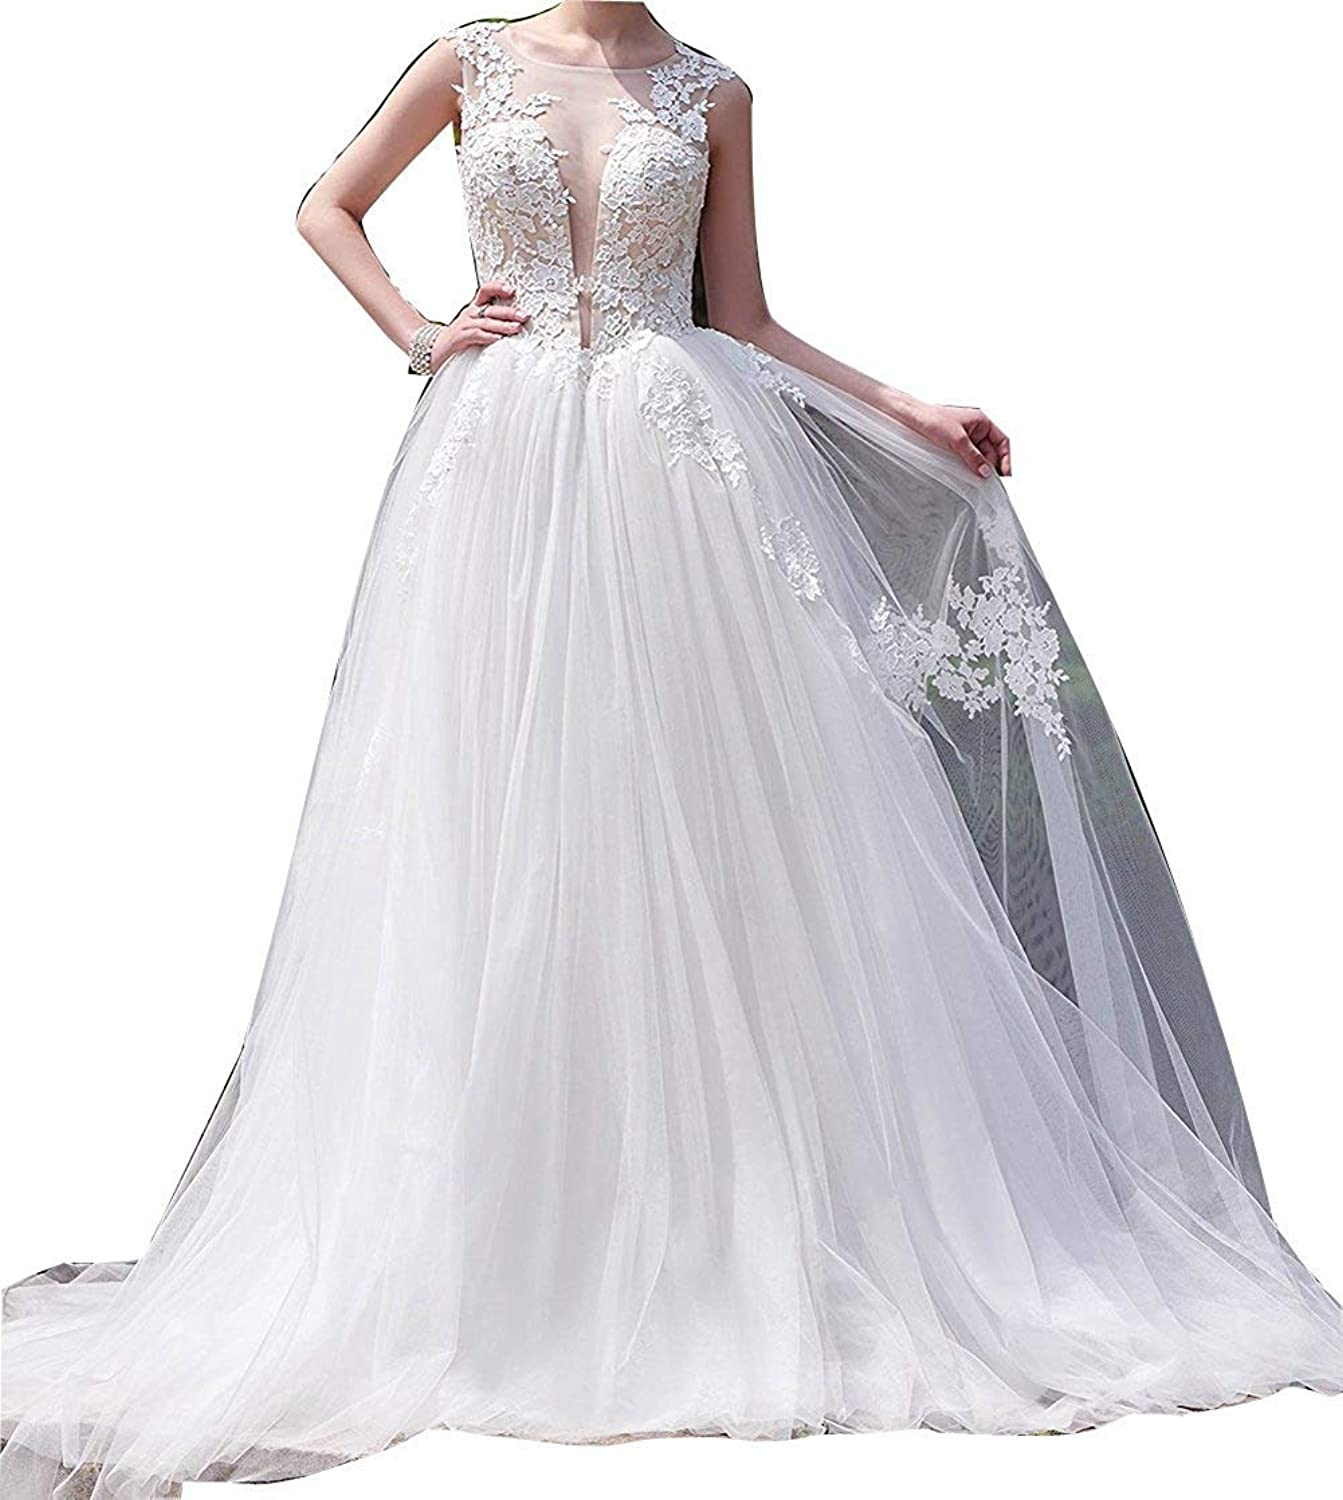 JQLD Sexy Lace Illusion Deep V Neck Wedding Dresses 2019 Long Backless Tulle Bridal Gowns